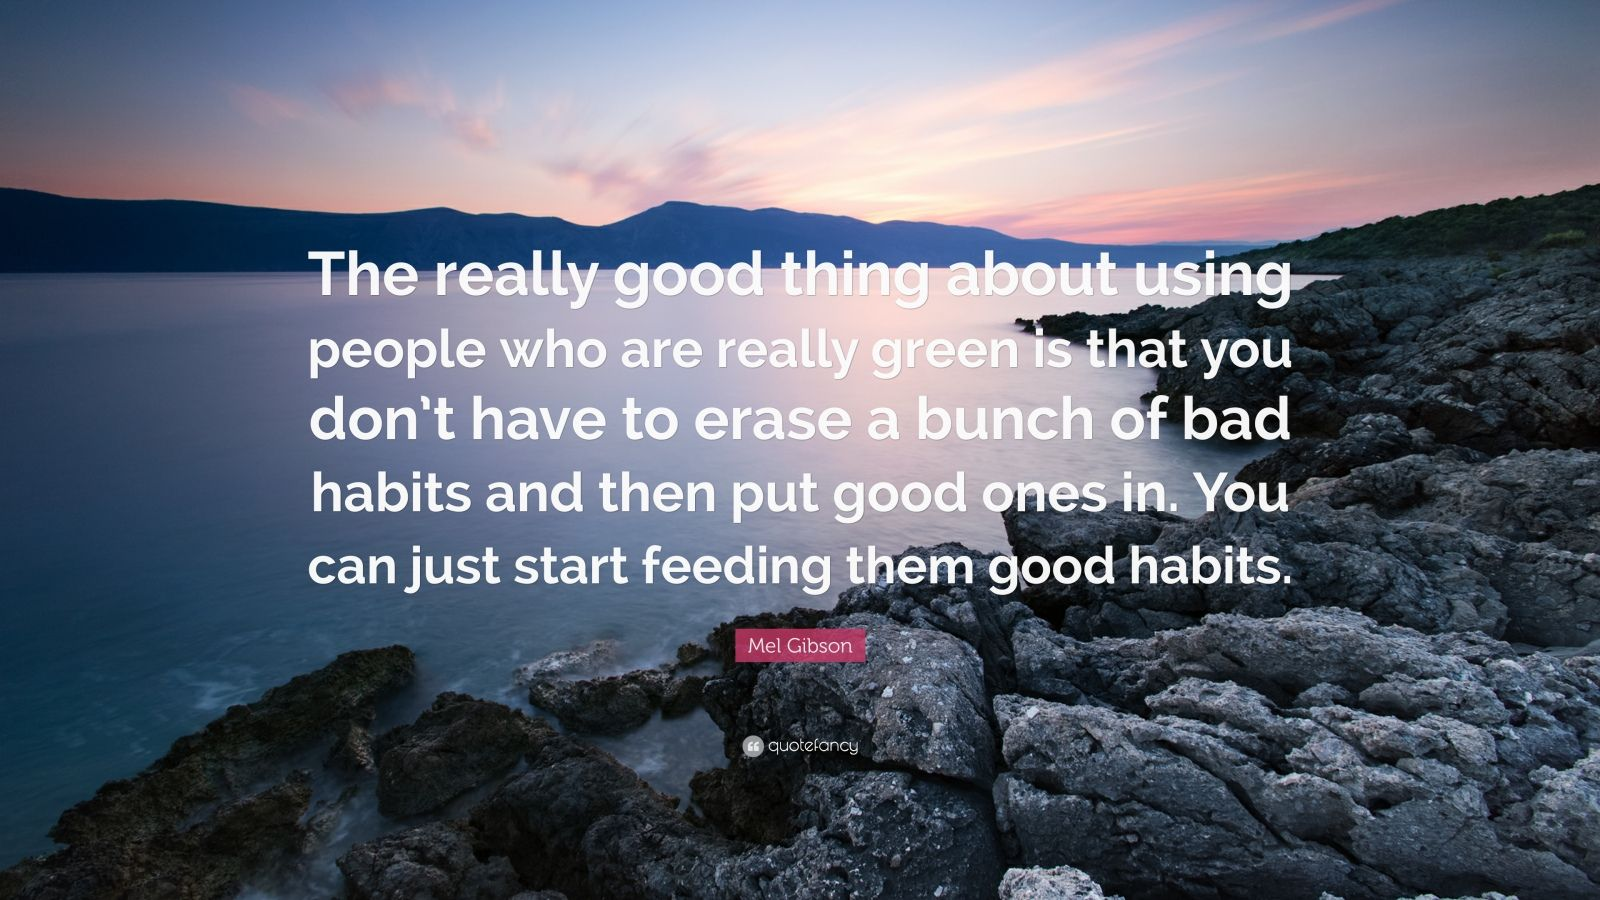 """Mel Gibson Quote: """"The really good thing about using people who are really green is that you don't have to erase a bunch of bad habits and then put good ones in. You can just start feeding them good habits."""""""